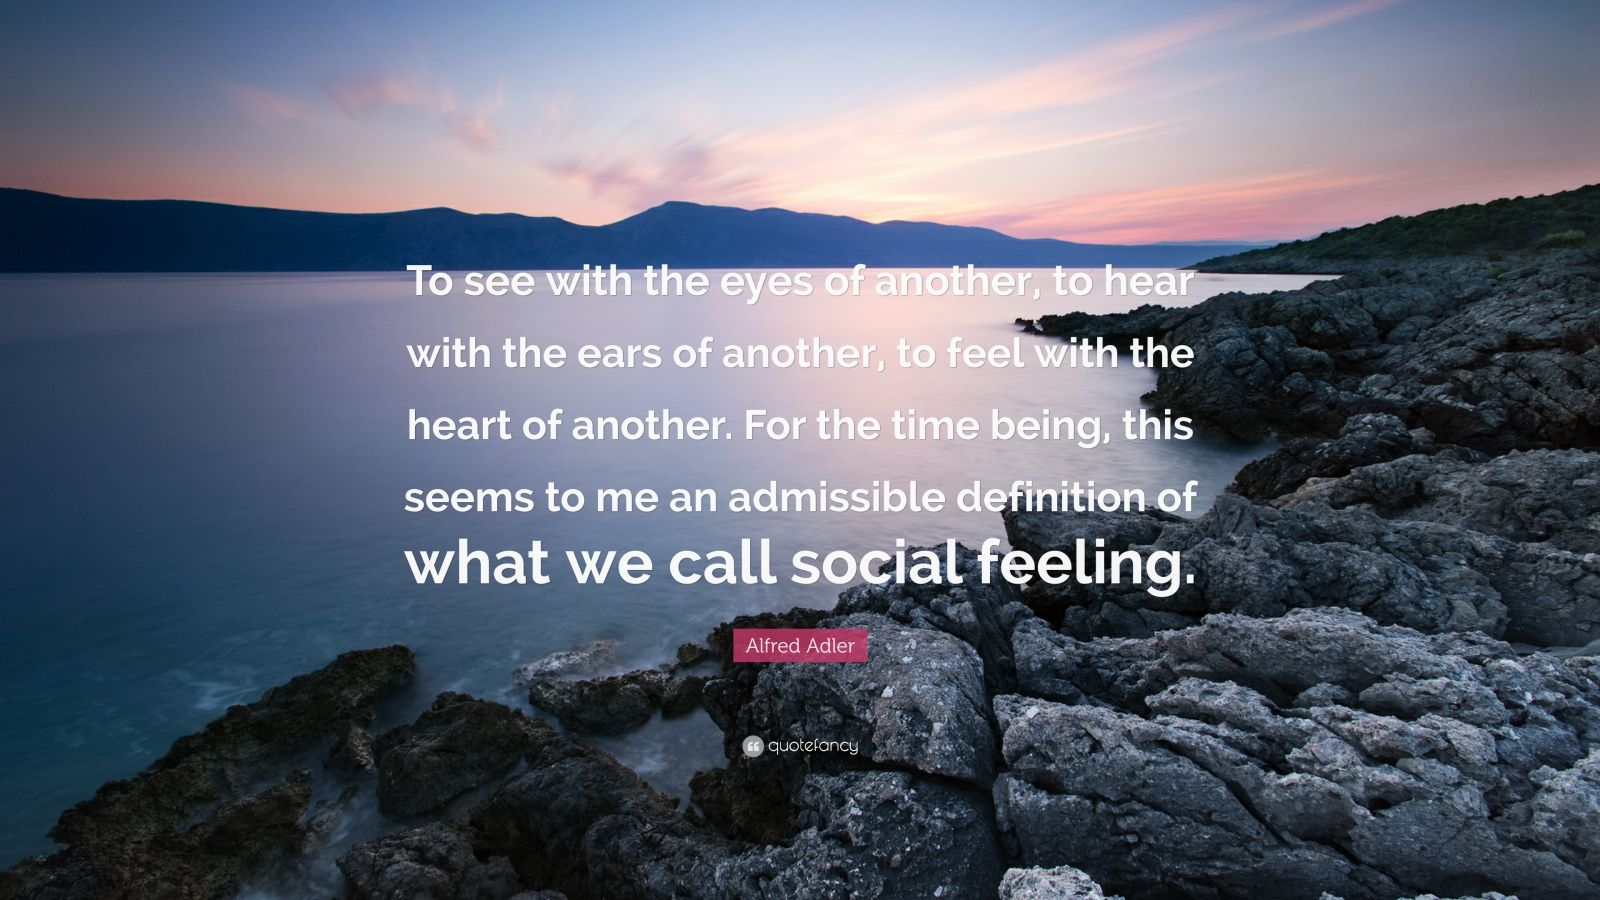 """Alfred Adler Quote: """"To see with the eyes of another, to hear with the ears of another, to feel with the heart of another. For the time being, this seems to me an admissible definition of what we call social feeling."""""""